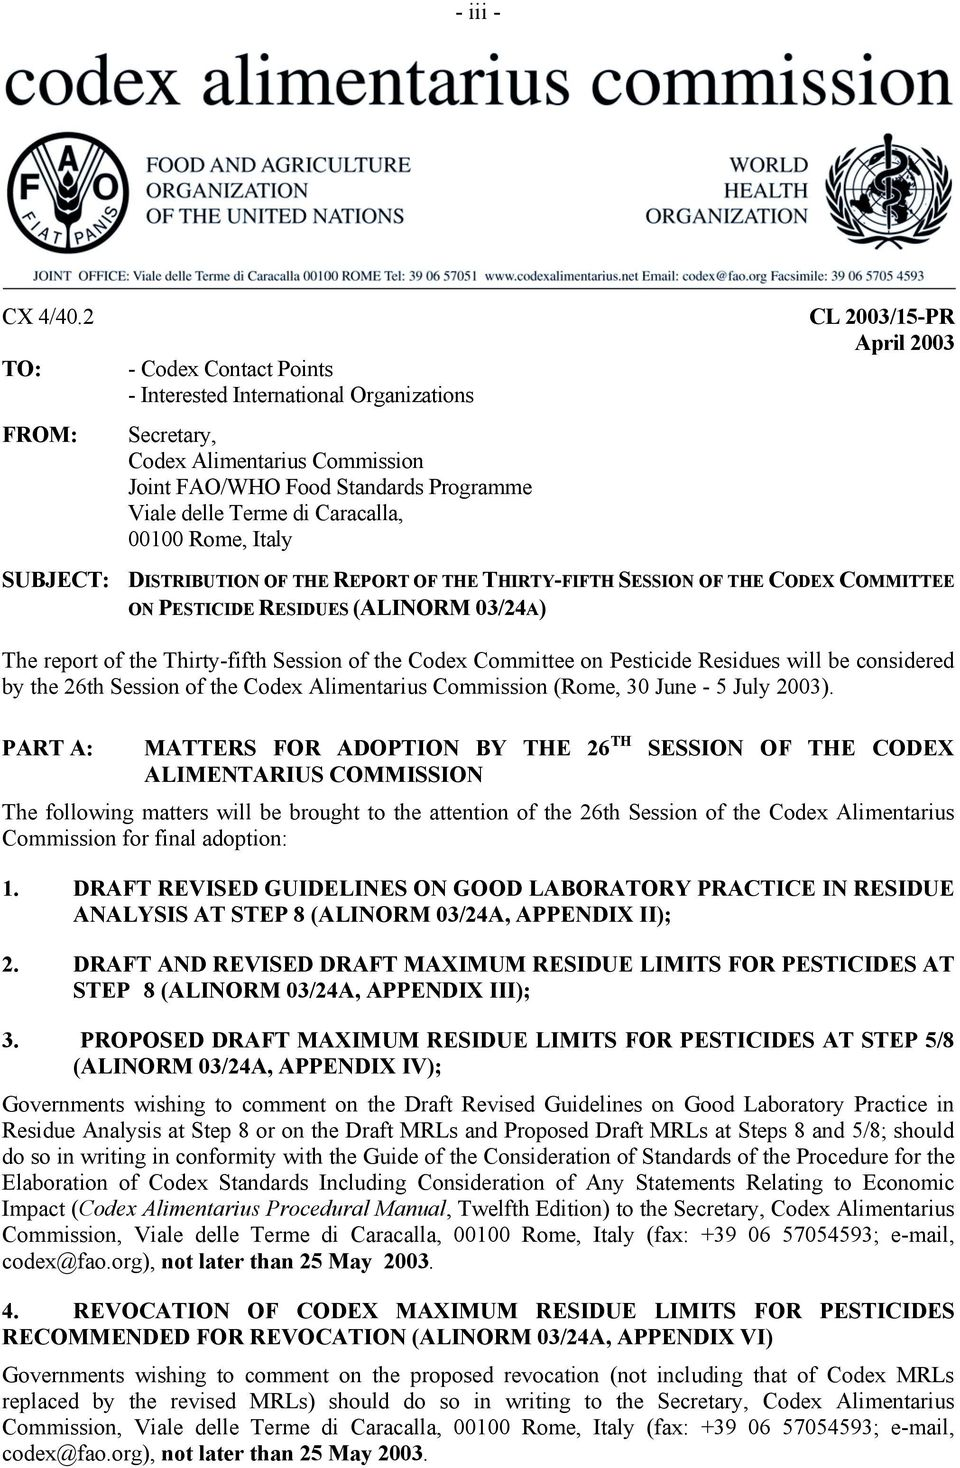 00100 Rome, Italy CL 2003/15-PR April 2003 DISTRIBUTION OF THE REPORT OF THE THIRTY-FIFTH SESSION OF THE CODEX COMMITTEE ON PESTICIDE RESIDUES (ALINORM 03/24A) The report of the Thirty-fifth Session